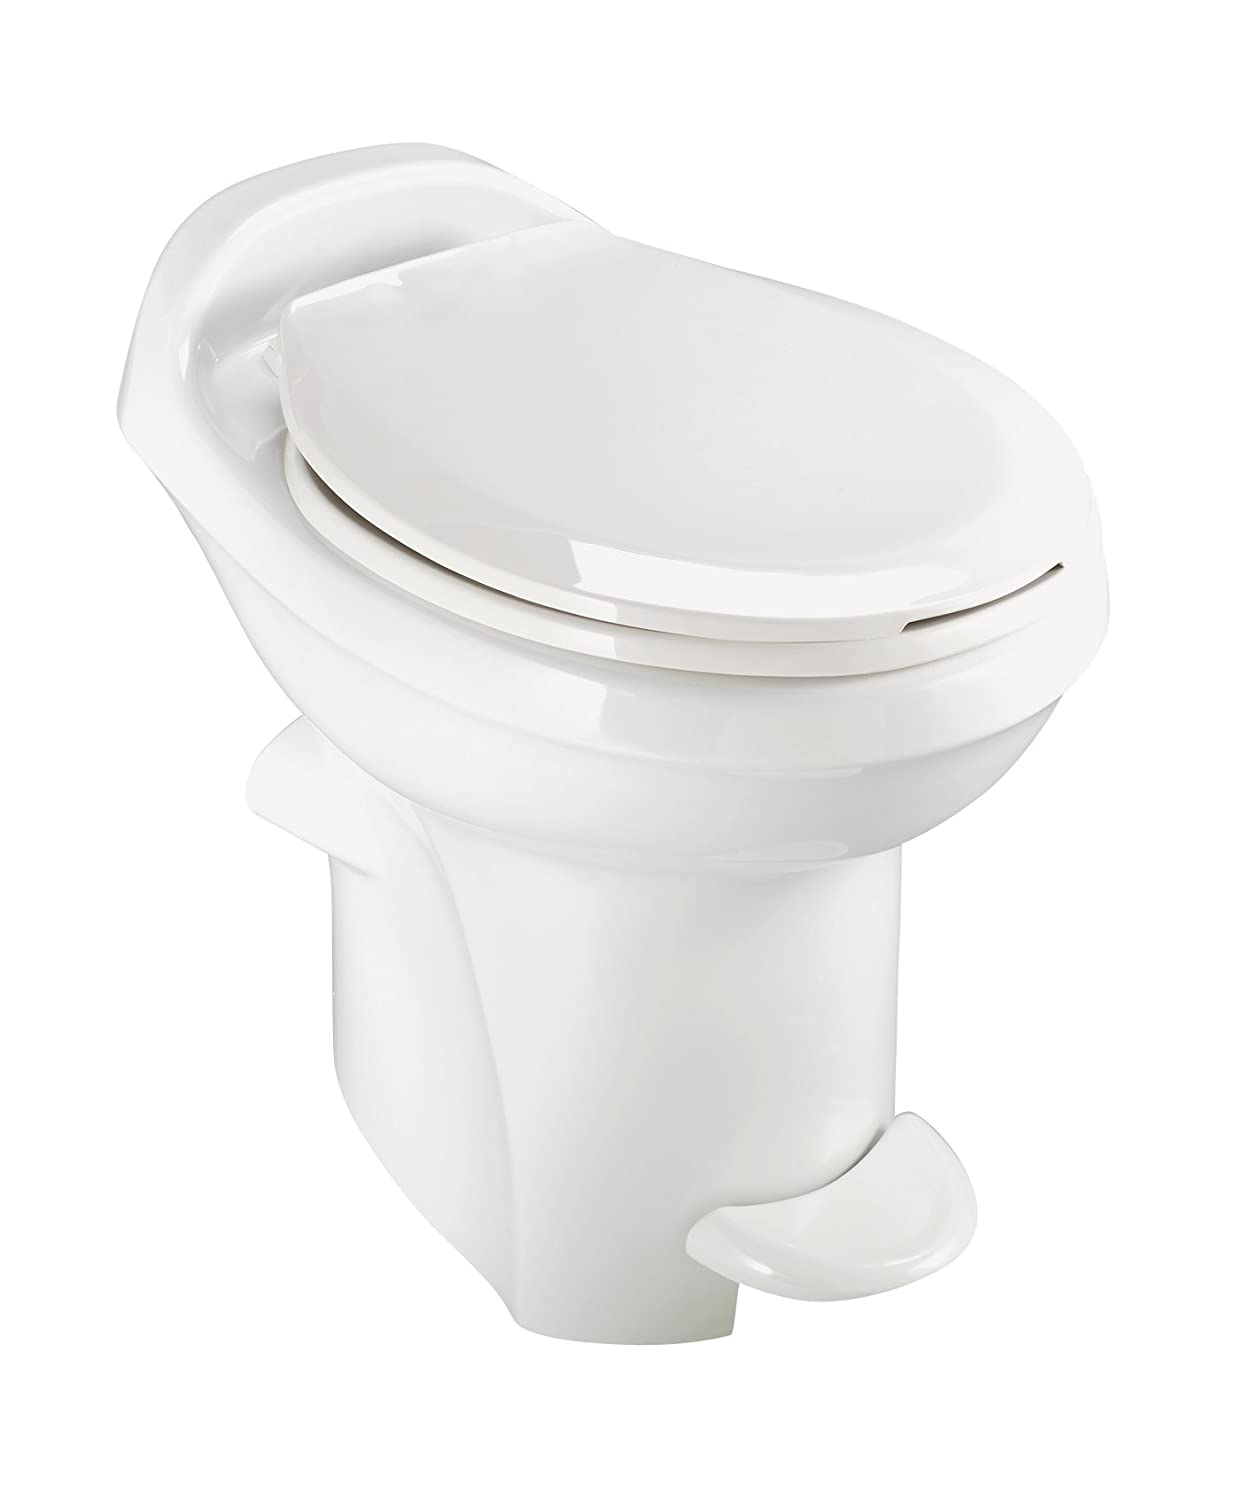 Top 5 Best RV Toilets Reviews in 2020 4